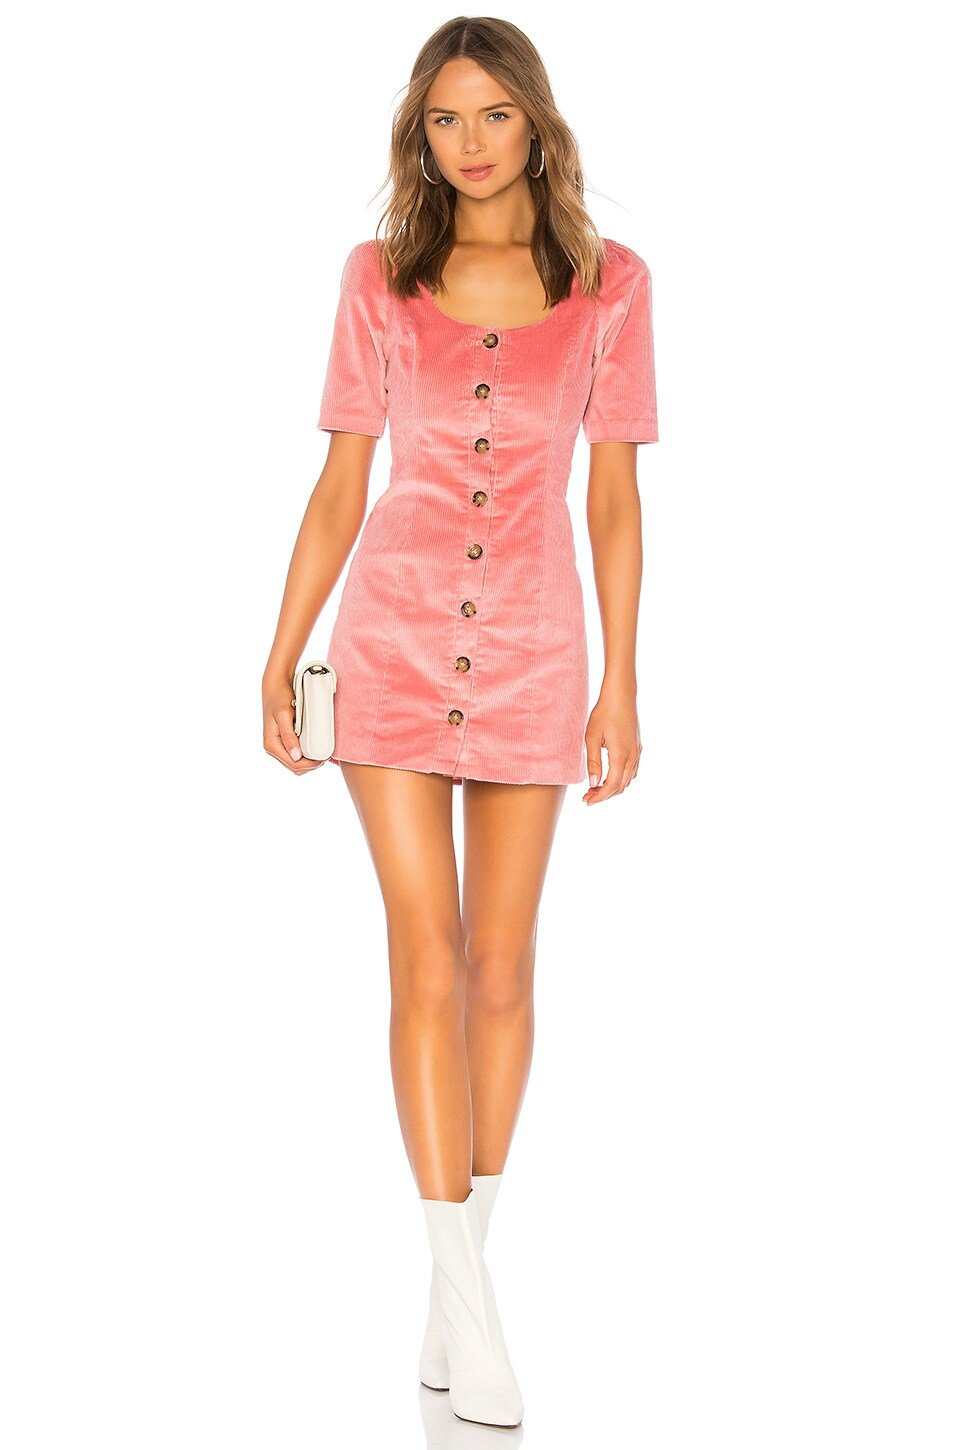 LPA VESTIDO PUFF SLEEVE BUTTON UP DRESS